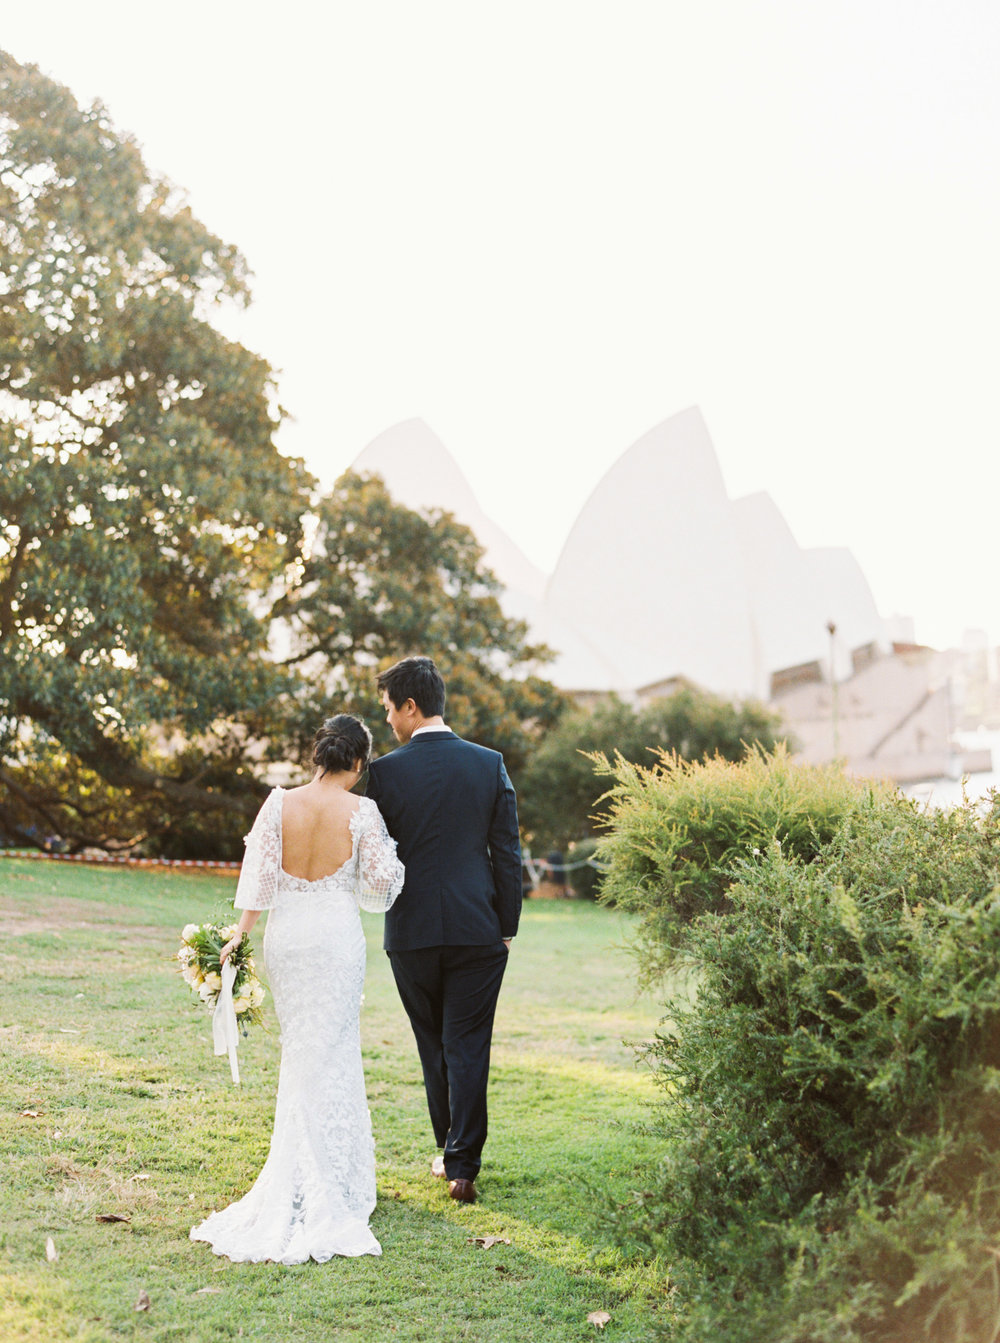 00015- Australia Sydney Wedding Photographer Sheri McMahon.jpg